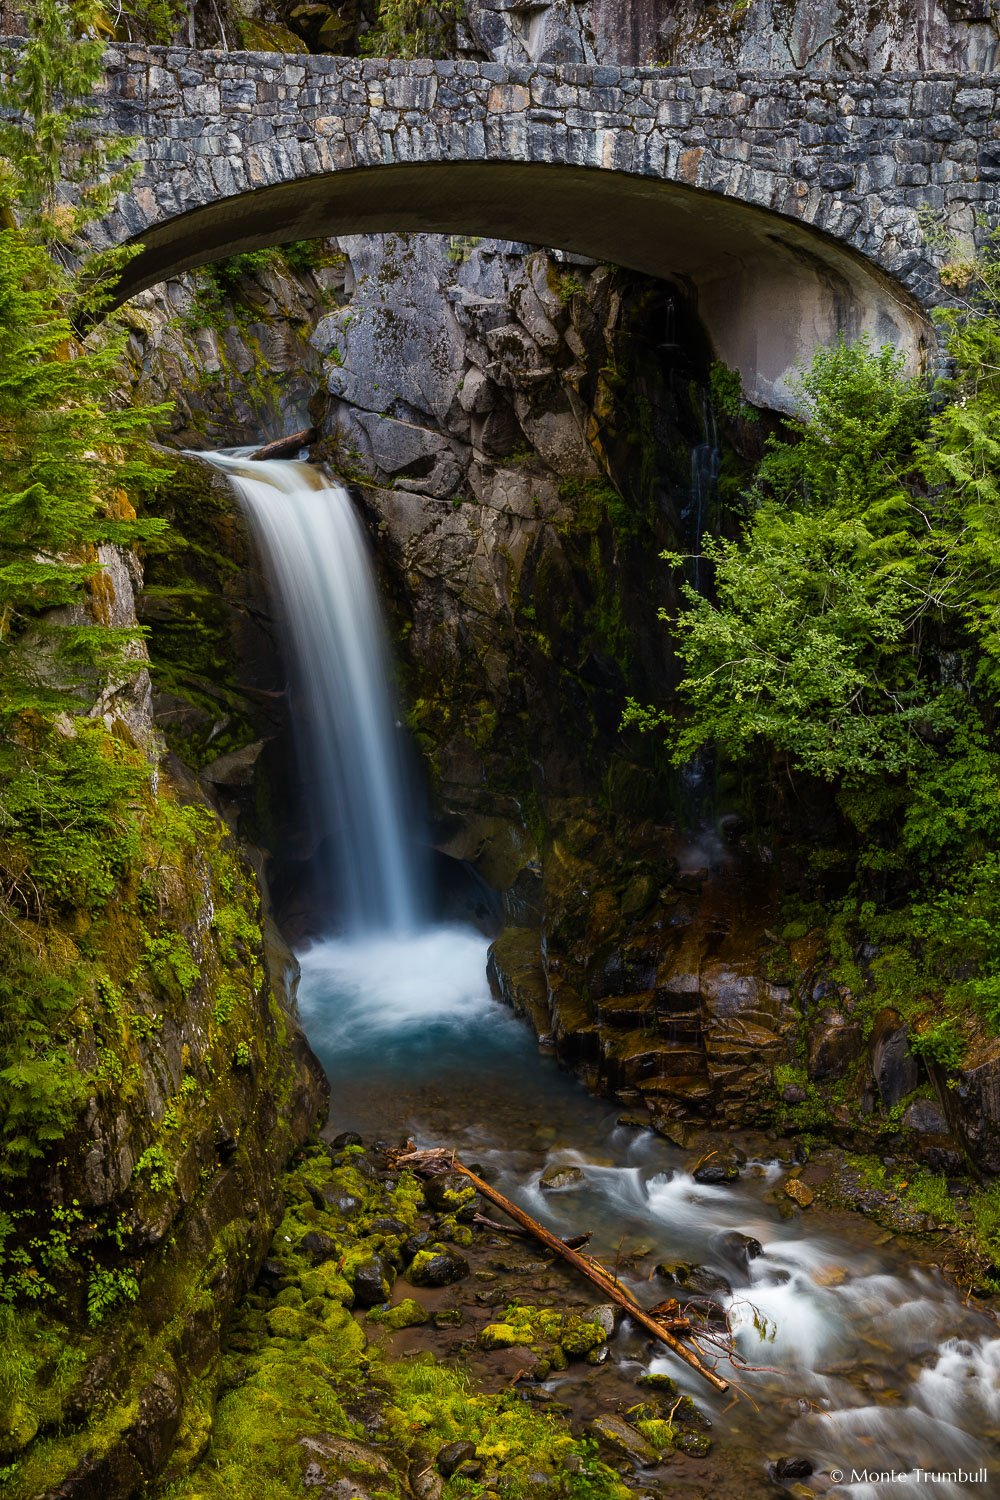 Beauty Beneath the Bridge - Van Trump Creek drops gracefully over the lower section of Christine Falls and flows underneath a rustic stone bridge in Mount Rainier National Park, Washington.